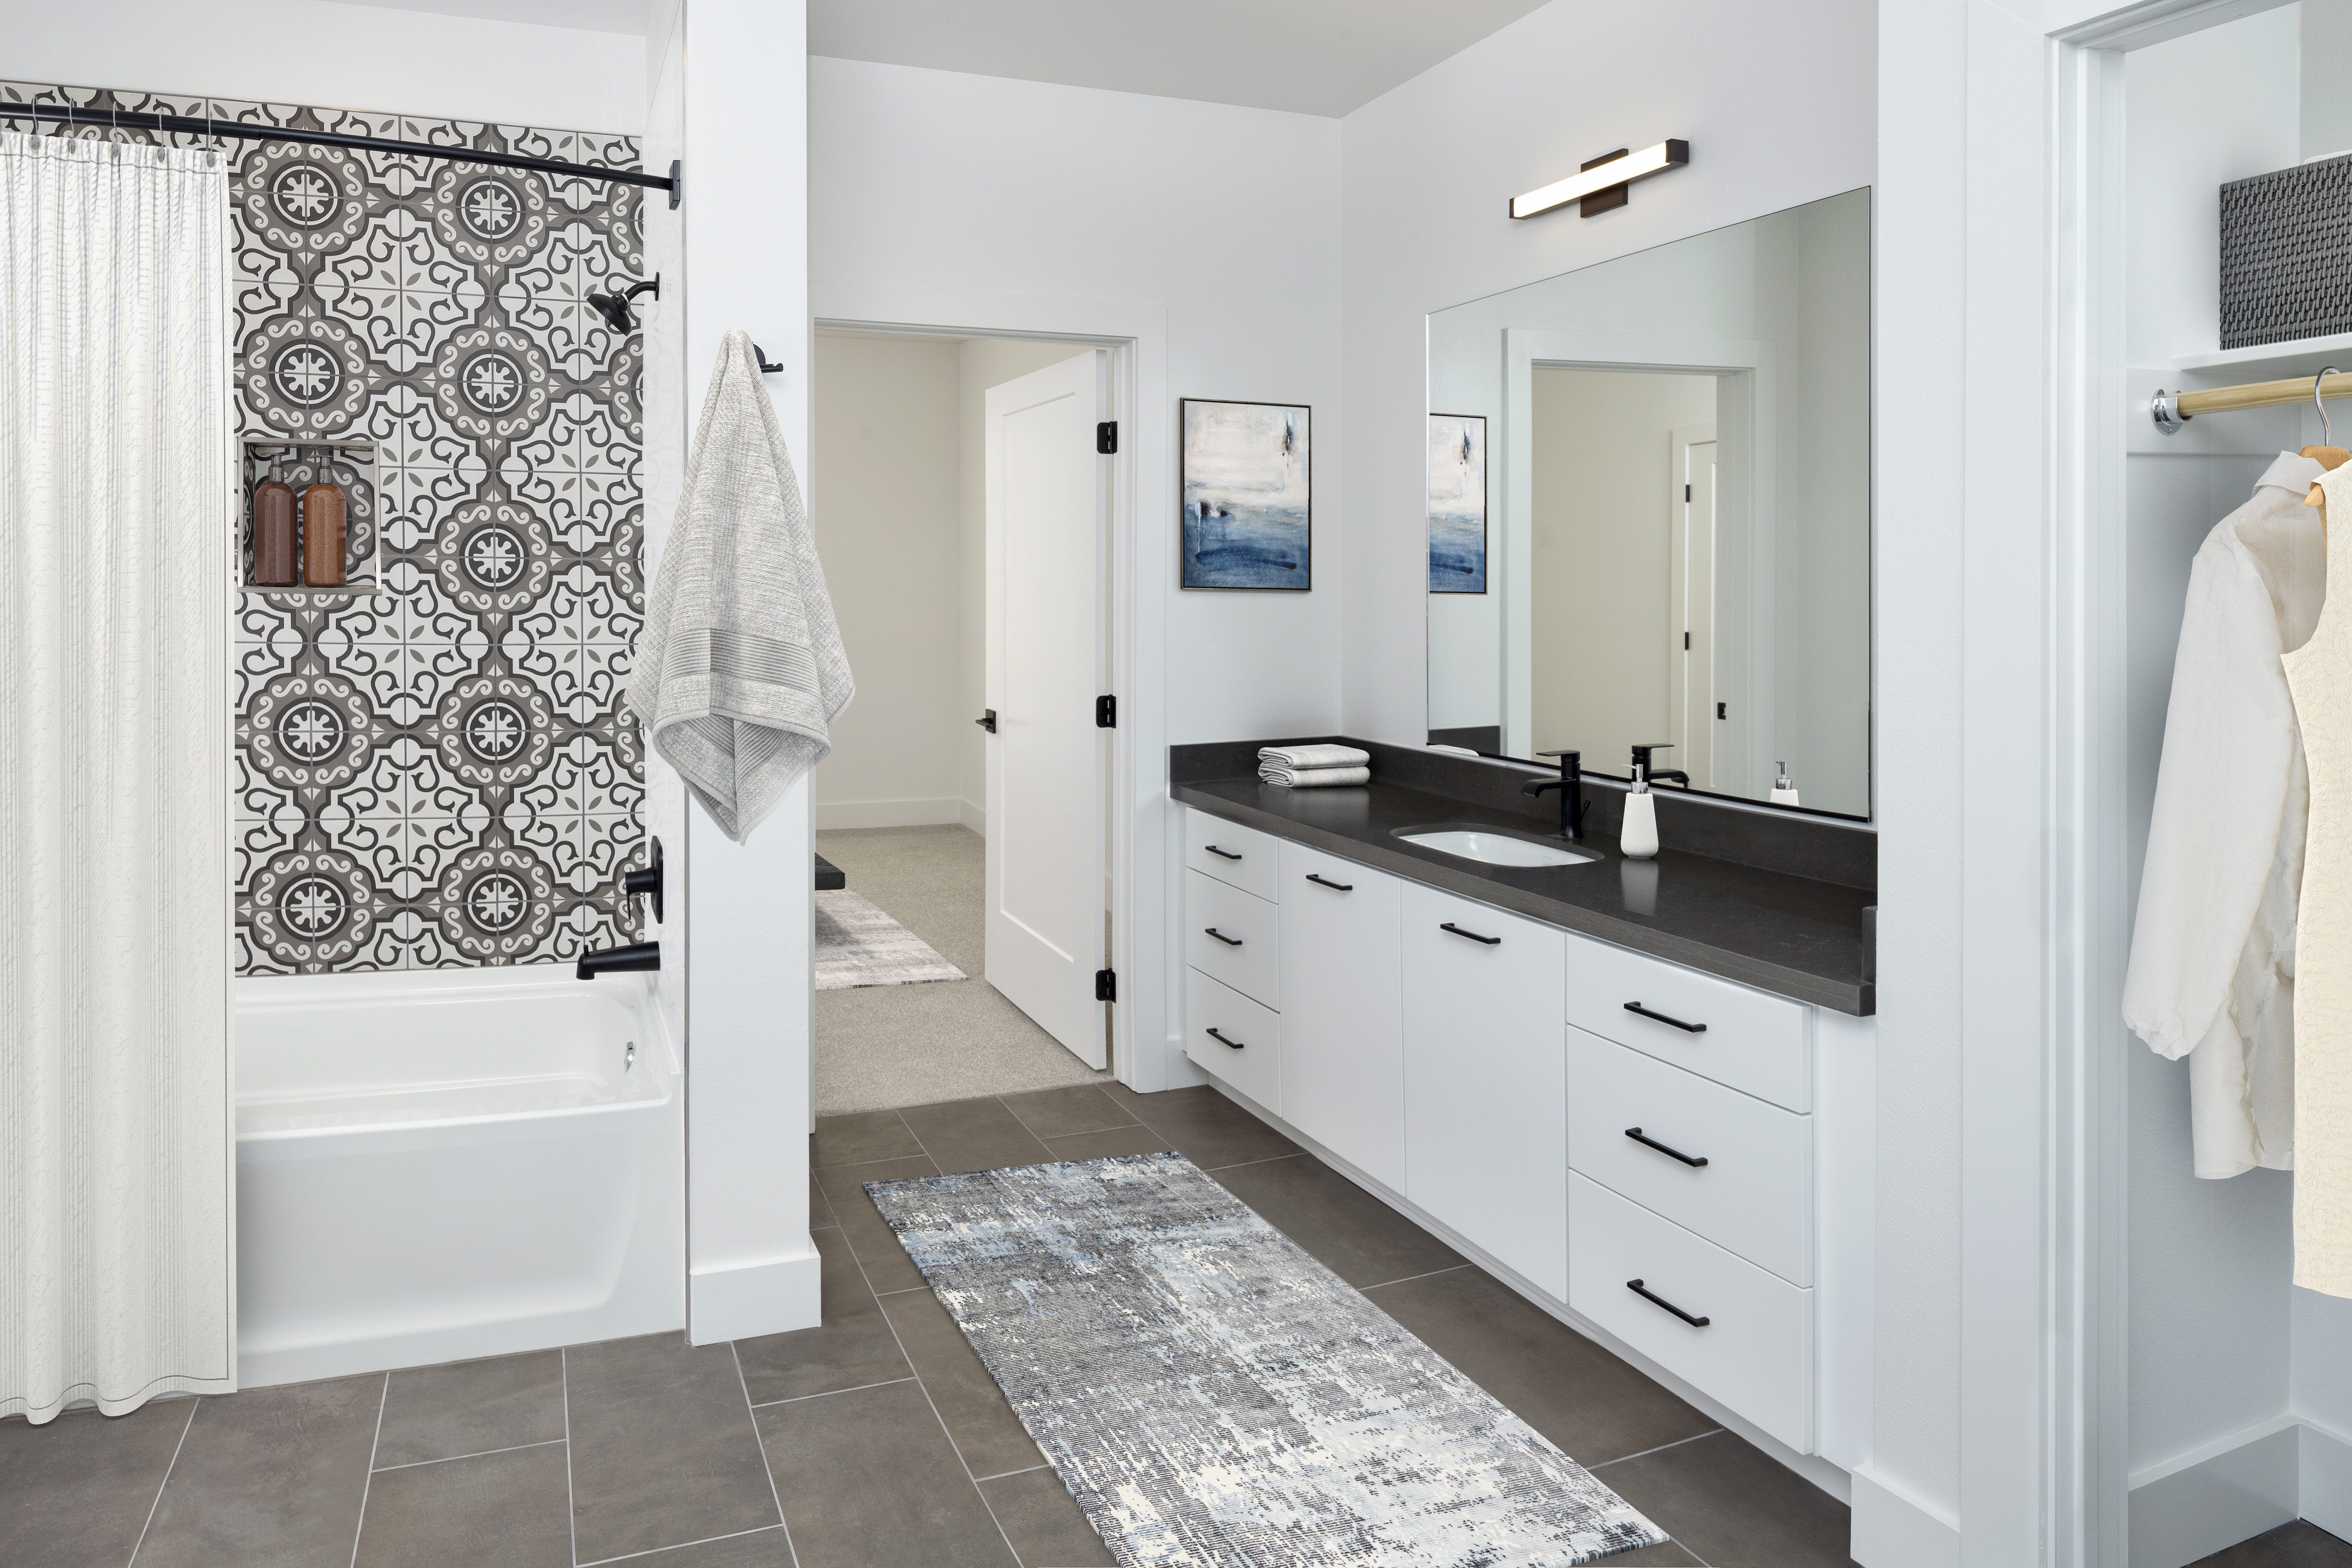 camden-hillcrest-apartments-san-diego-ca-bathroom-with-shower-tub.jpg